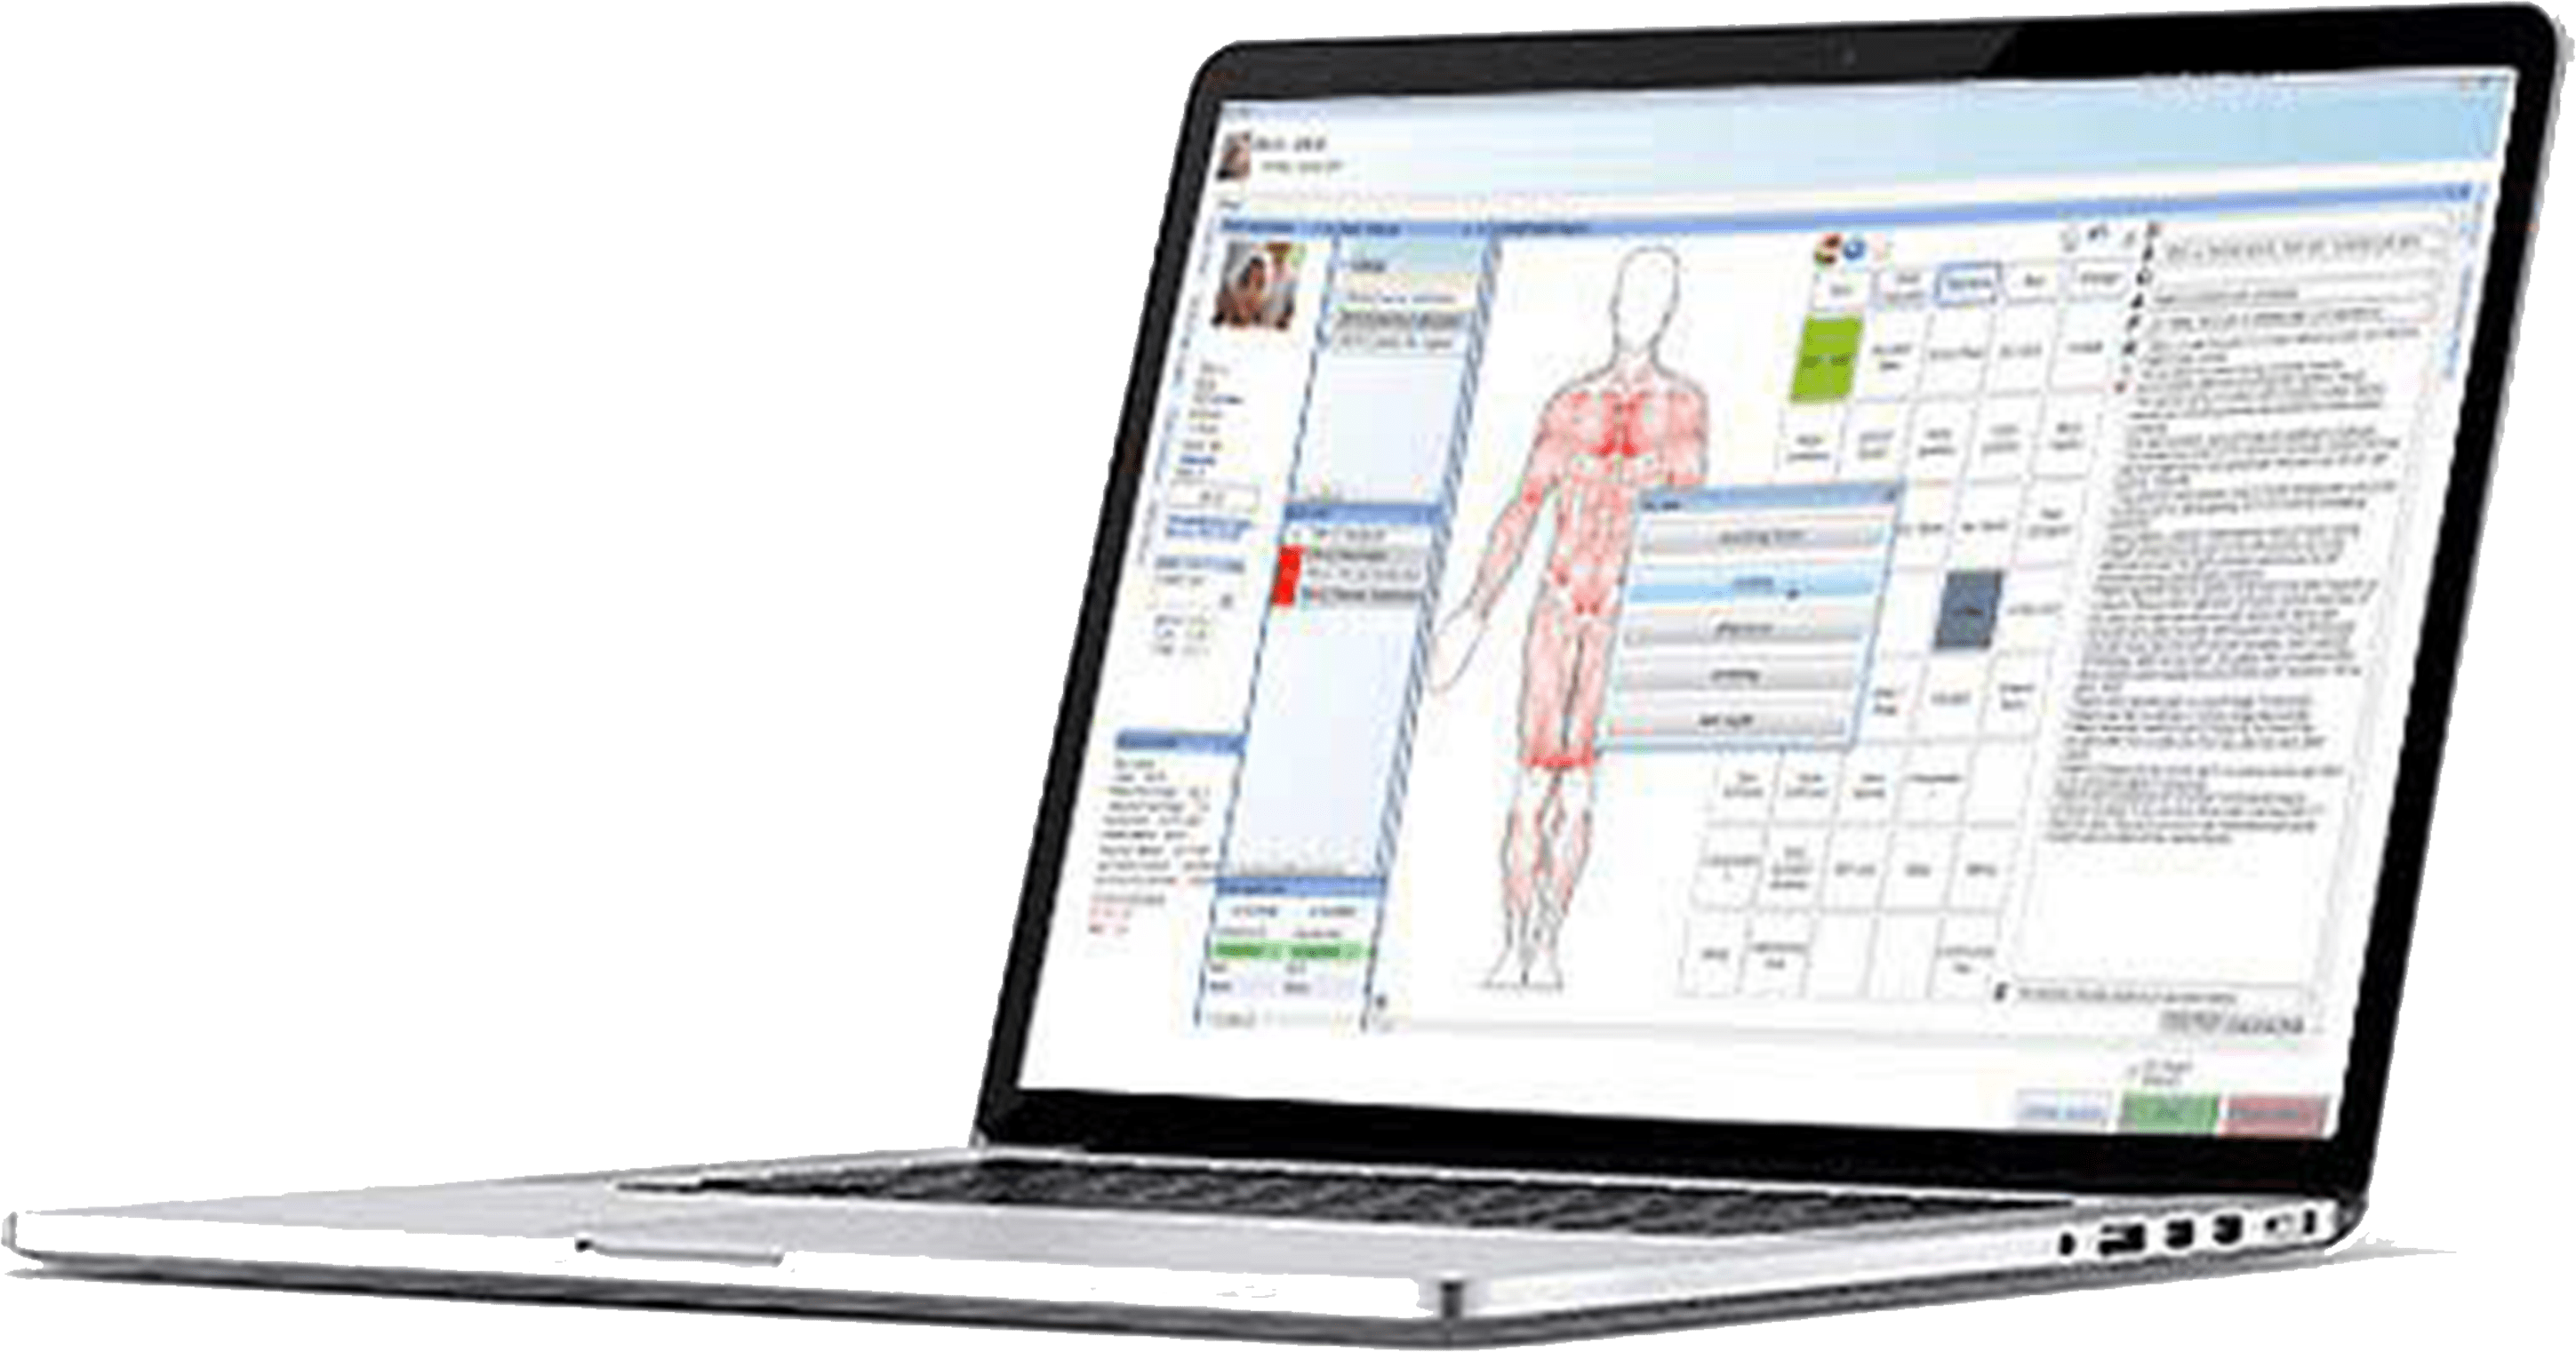 Chiropractic electronic medical records (EMR) software